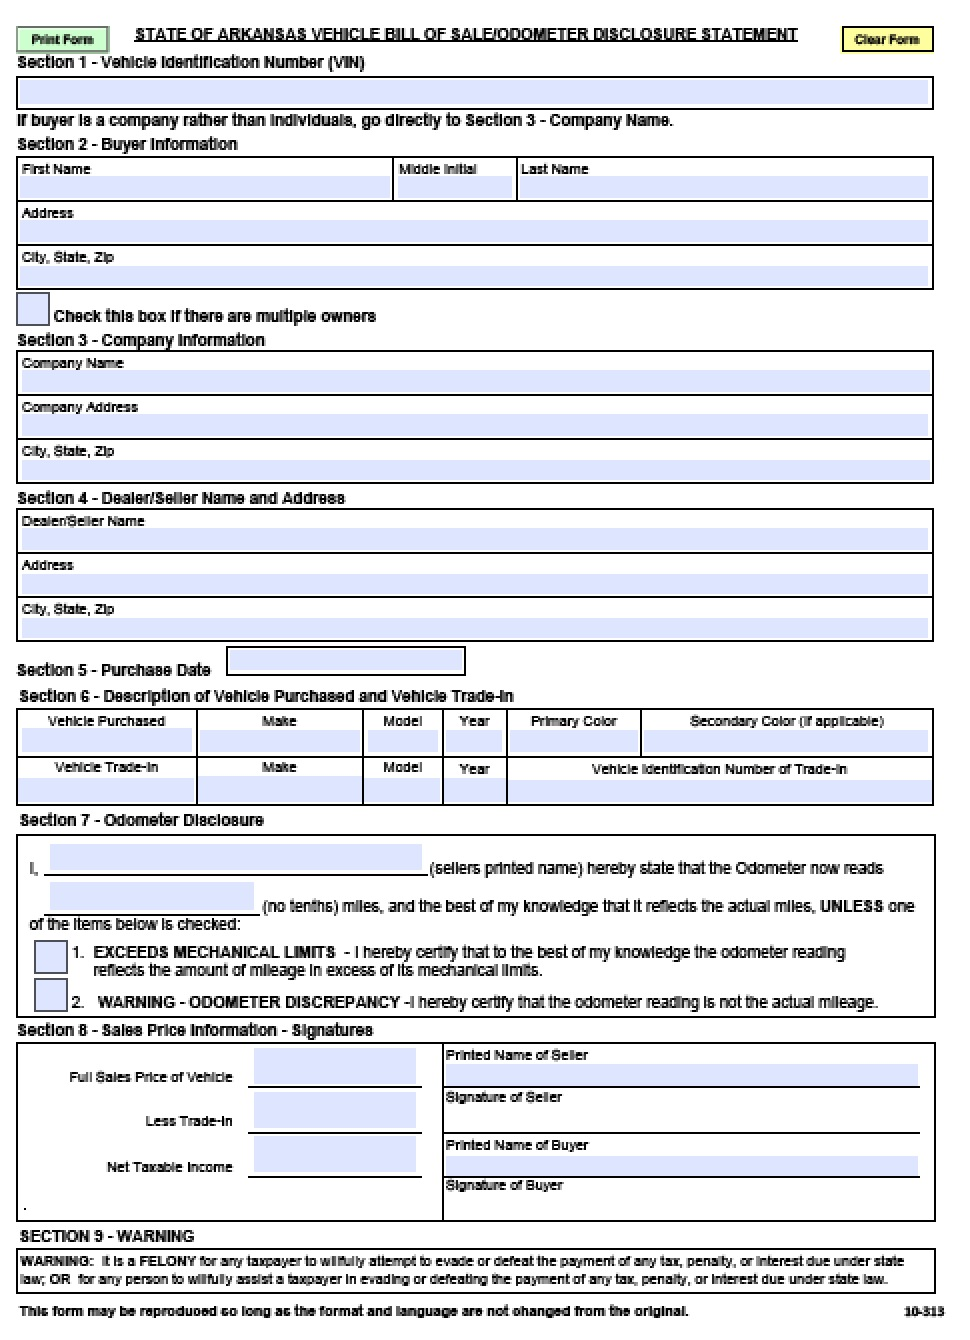 Free arkansas motor vehicle commission bill of sale form Motor vehicle bill of sale pdf